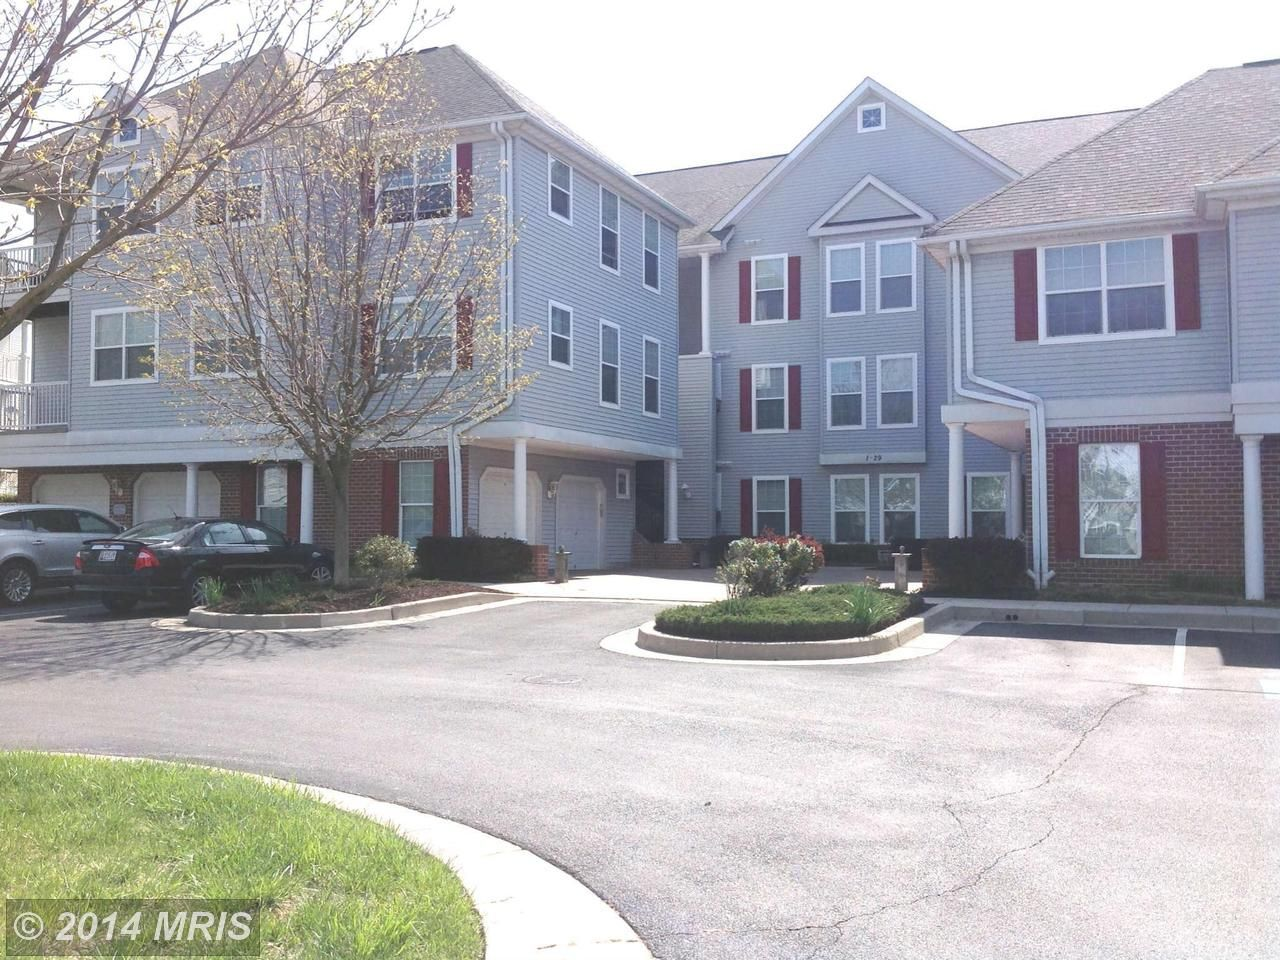 Real Estate Listing At 3 Hawk Rise Ln 103 Owings Mills Md 21117 Real Estate House Styles Real Estate Listings